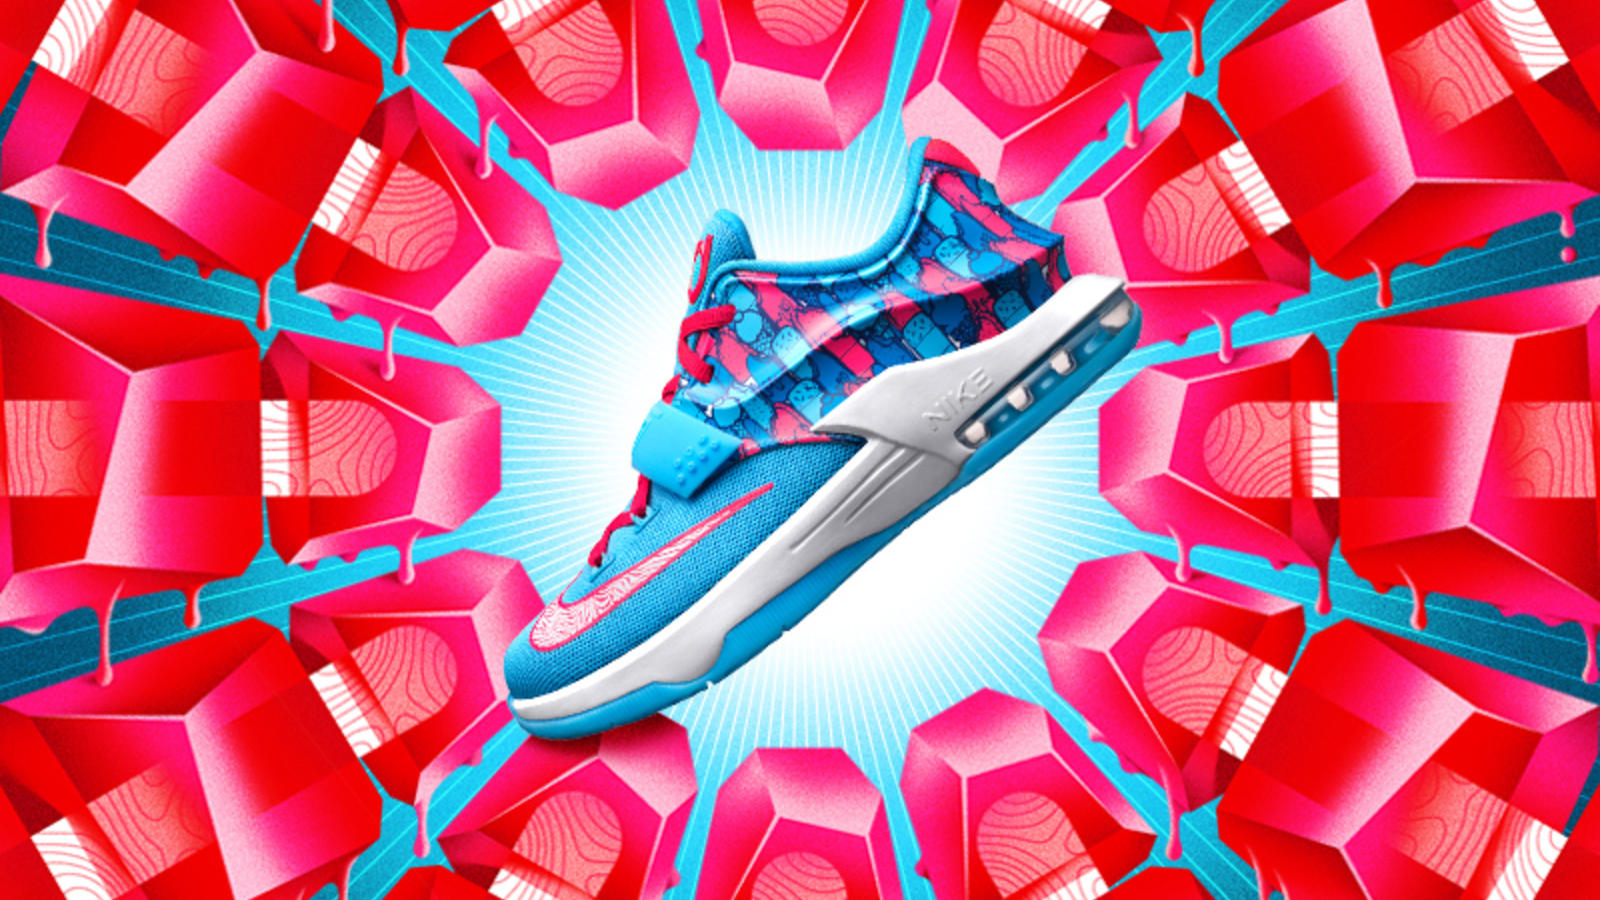 Nike News - Chillin' With KD: The KD7 Frozens Shoe Arrives Just In ...